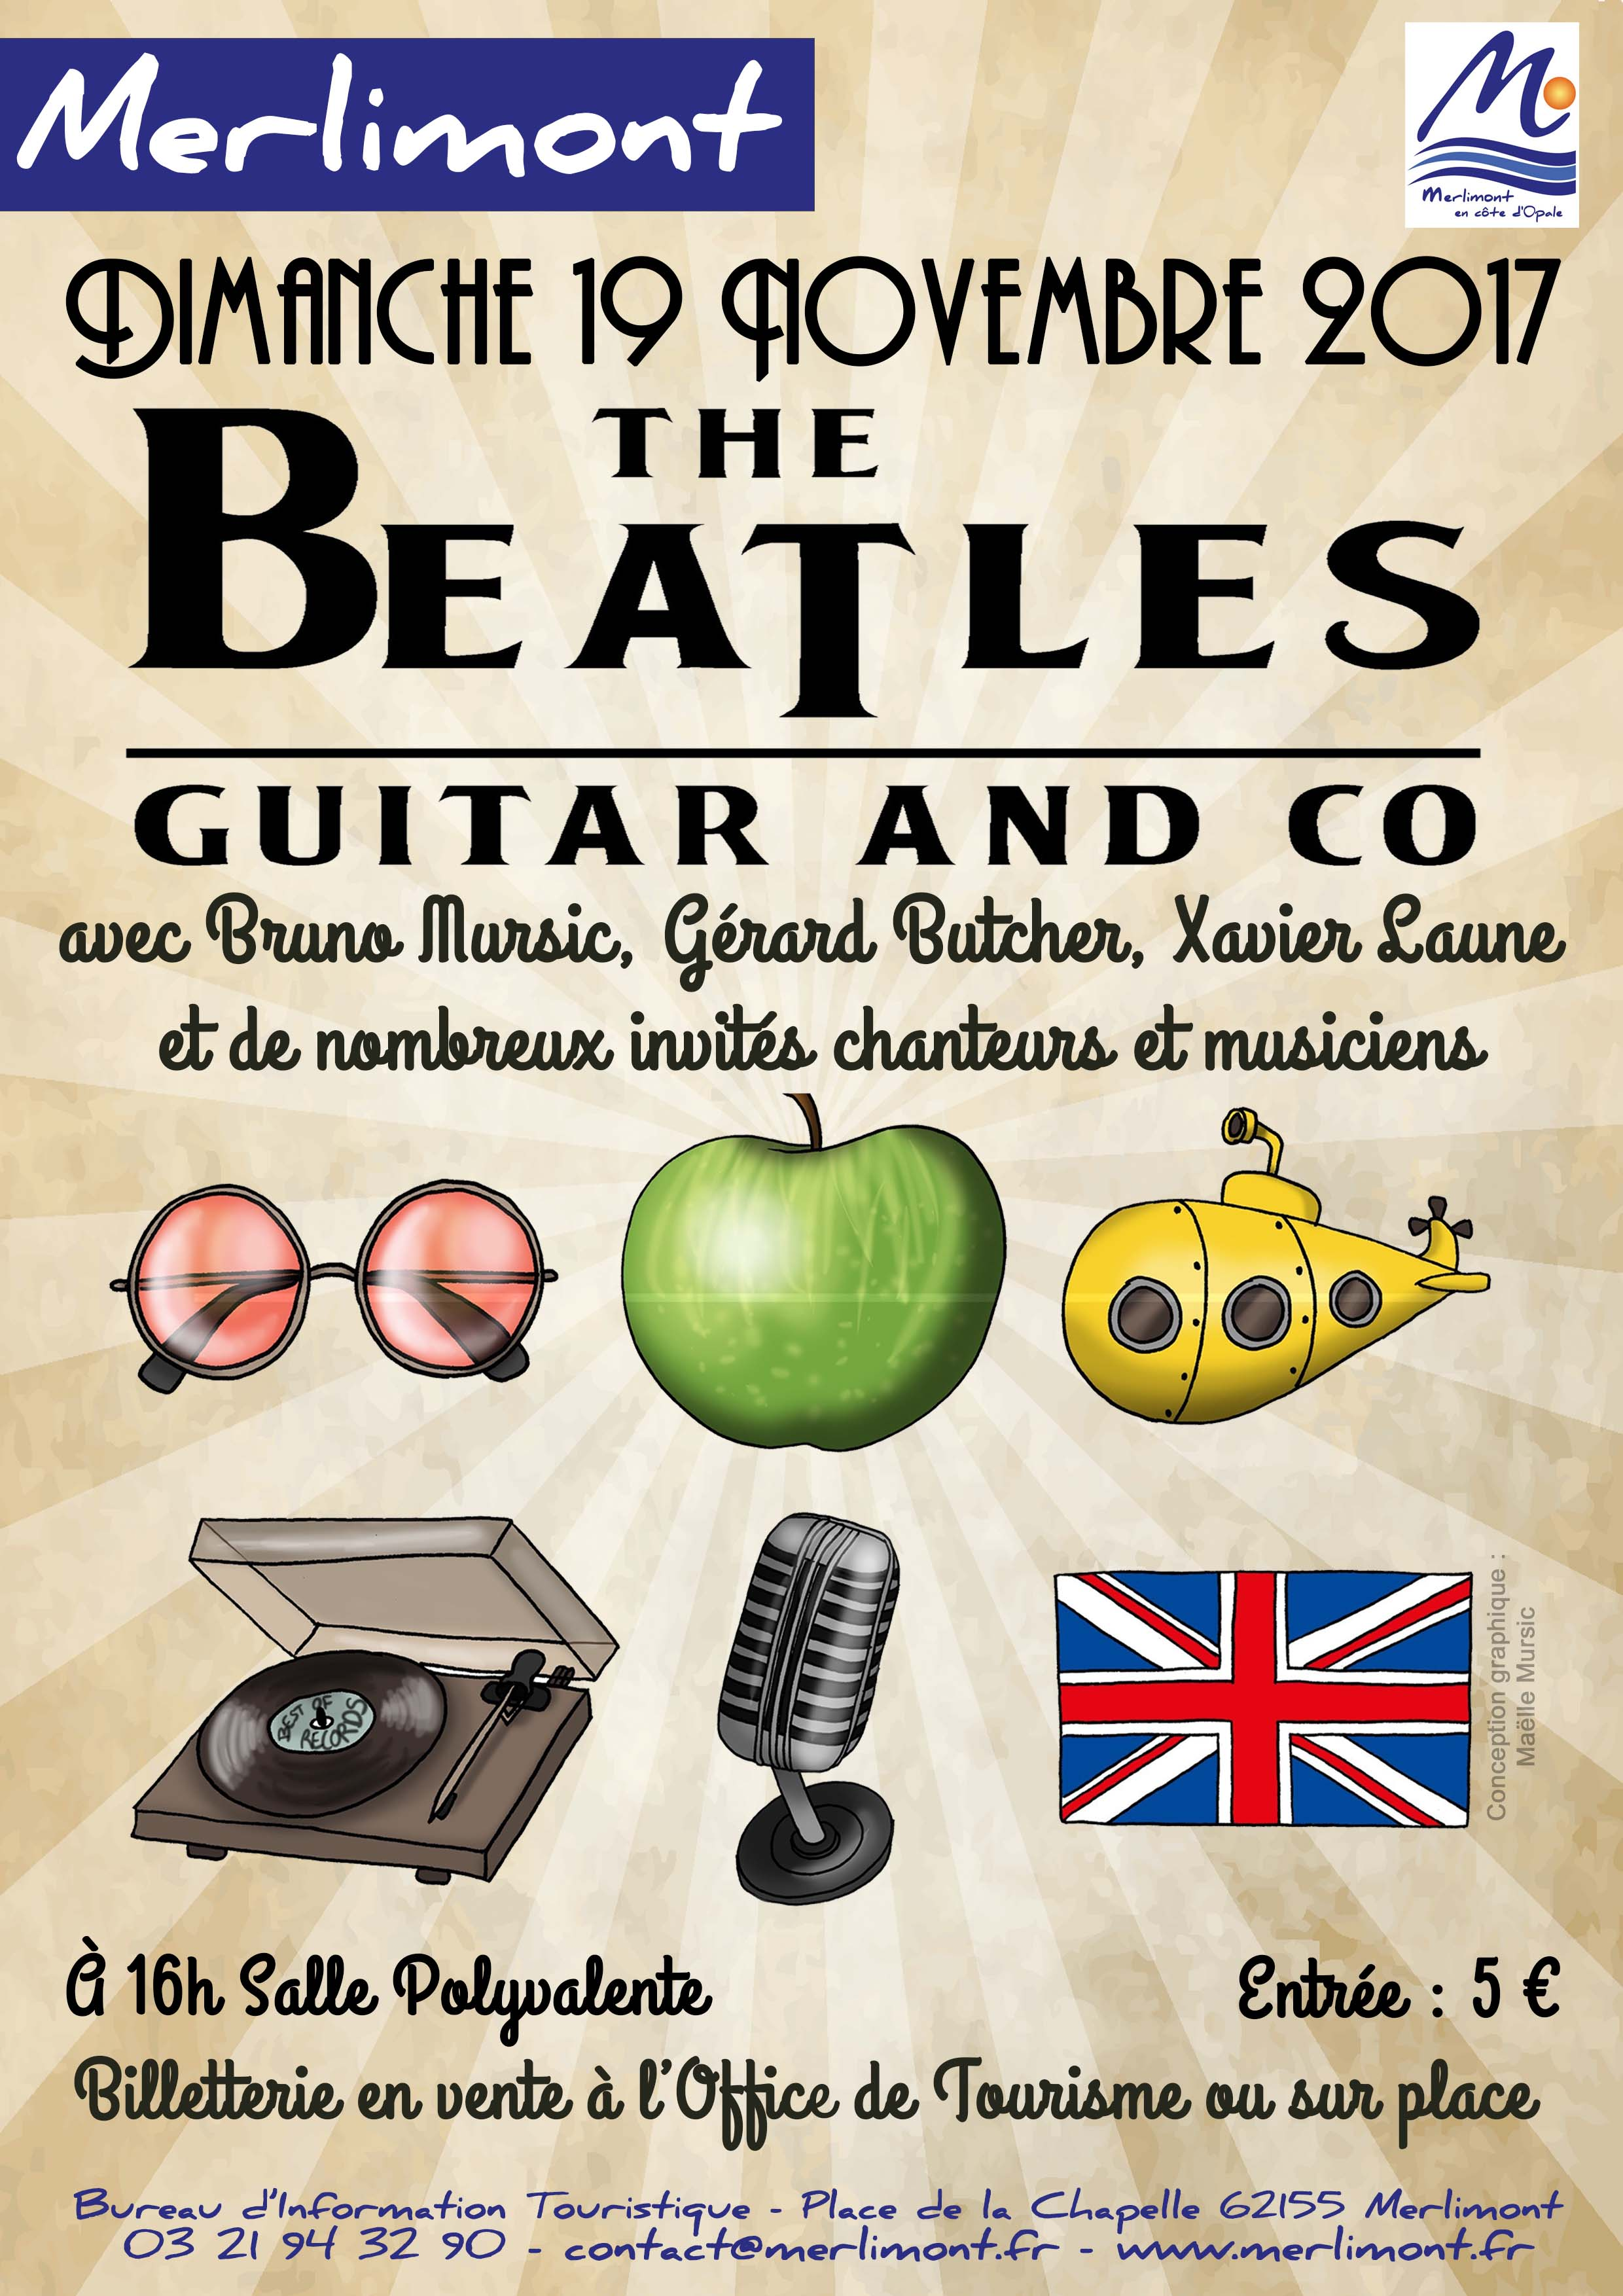 Concert Beatles Guitar and Co.jpg